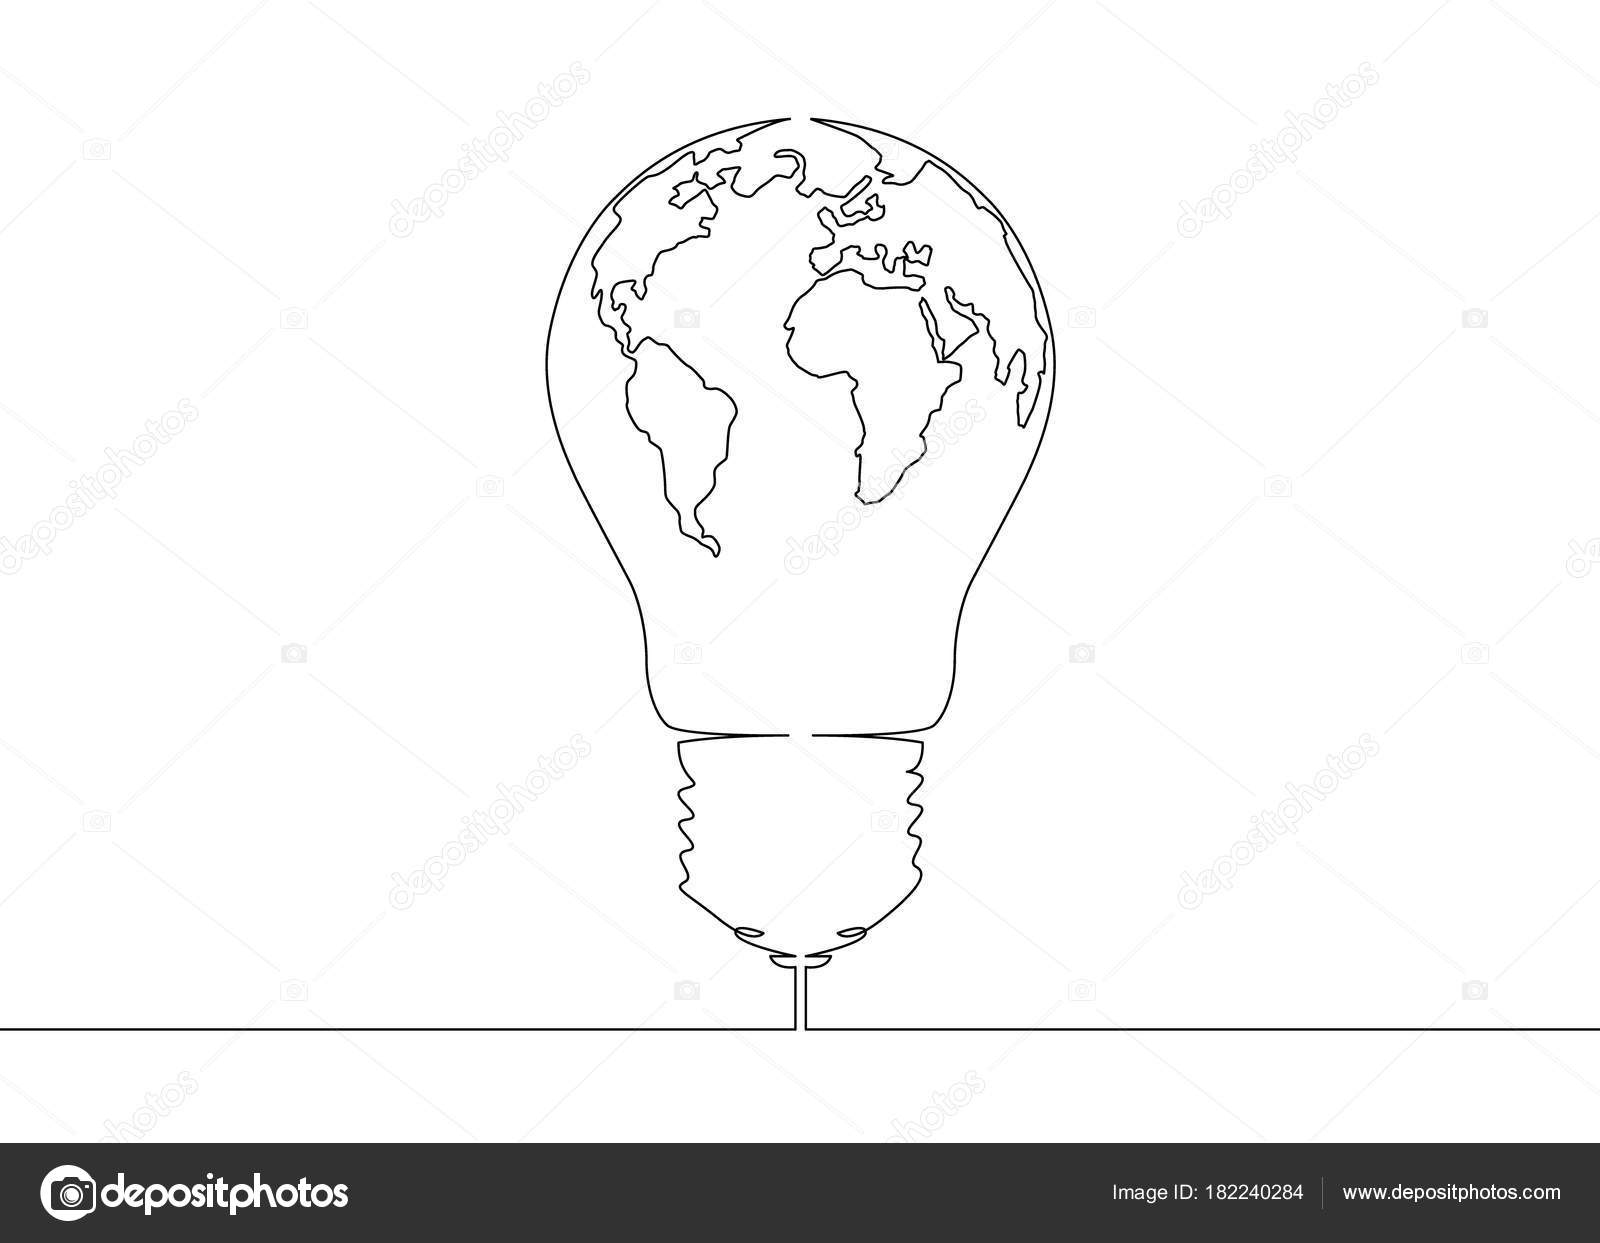 Continuous Line Drawing Light Bulb Symbol Idea World Map Globe Inside The Lamp Stock Vector